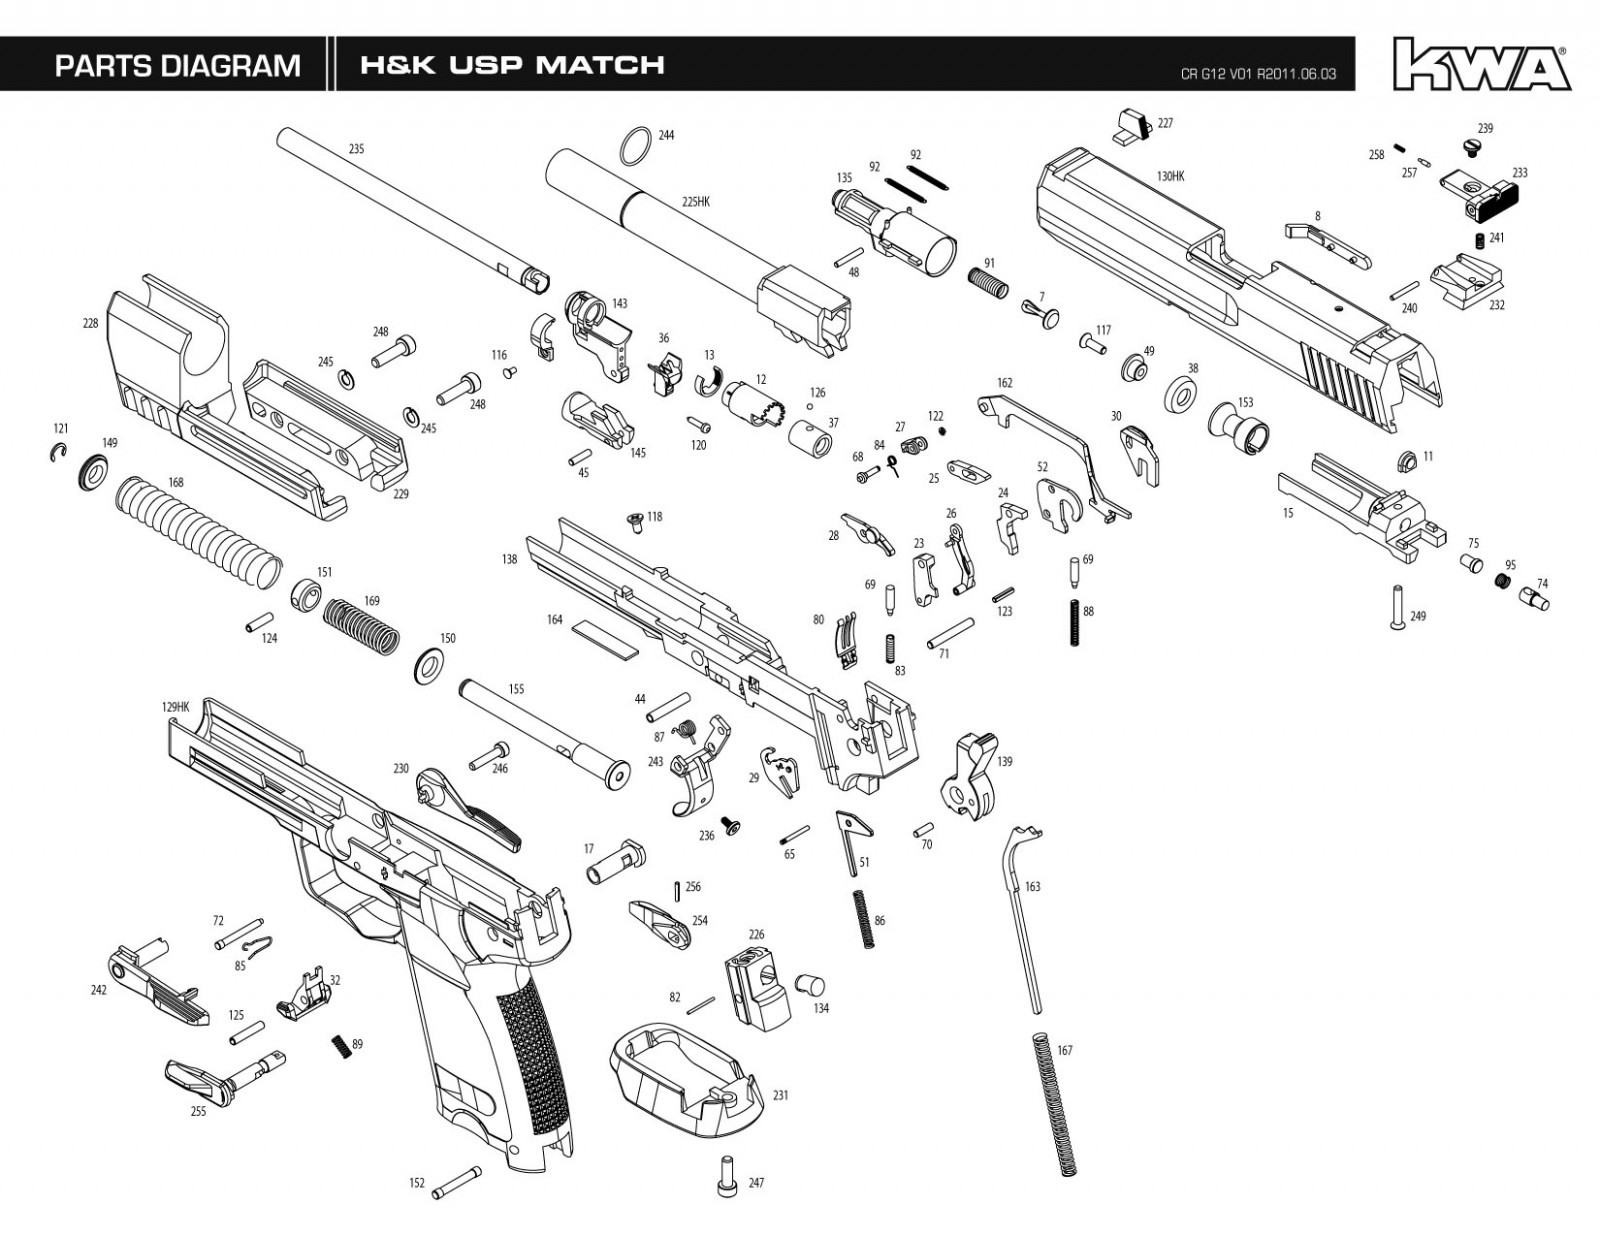 KWA/Umarex USP Match Exploded Diagram